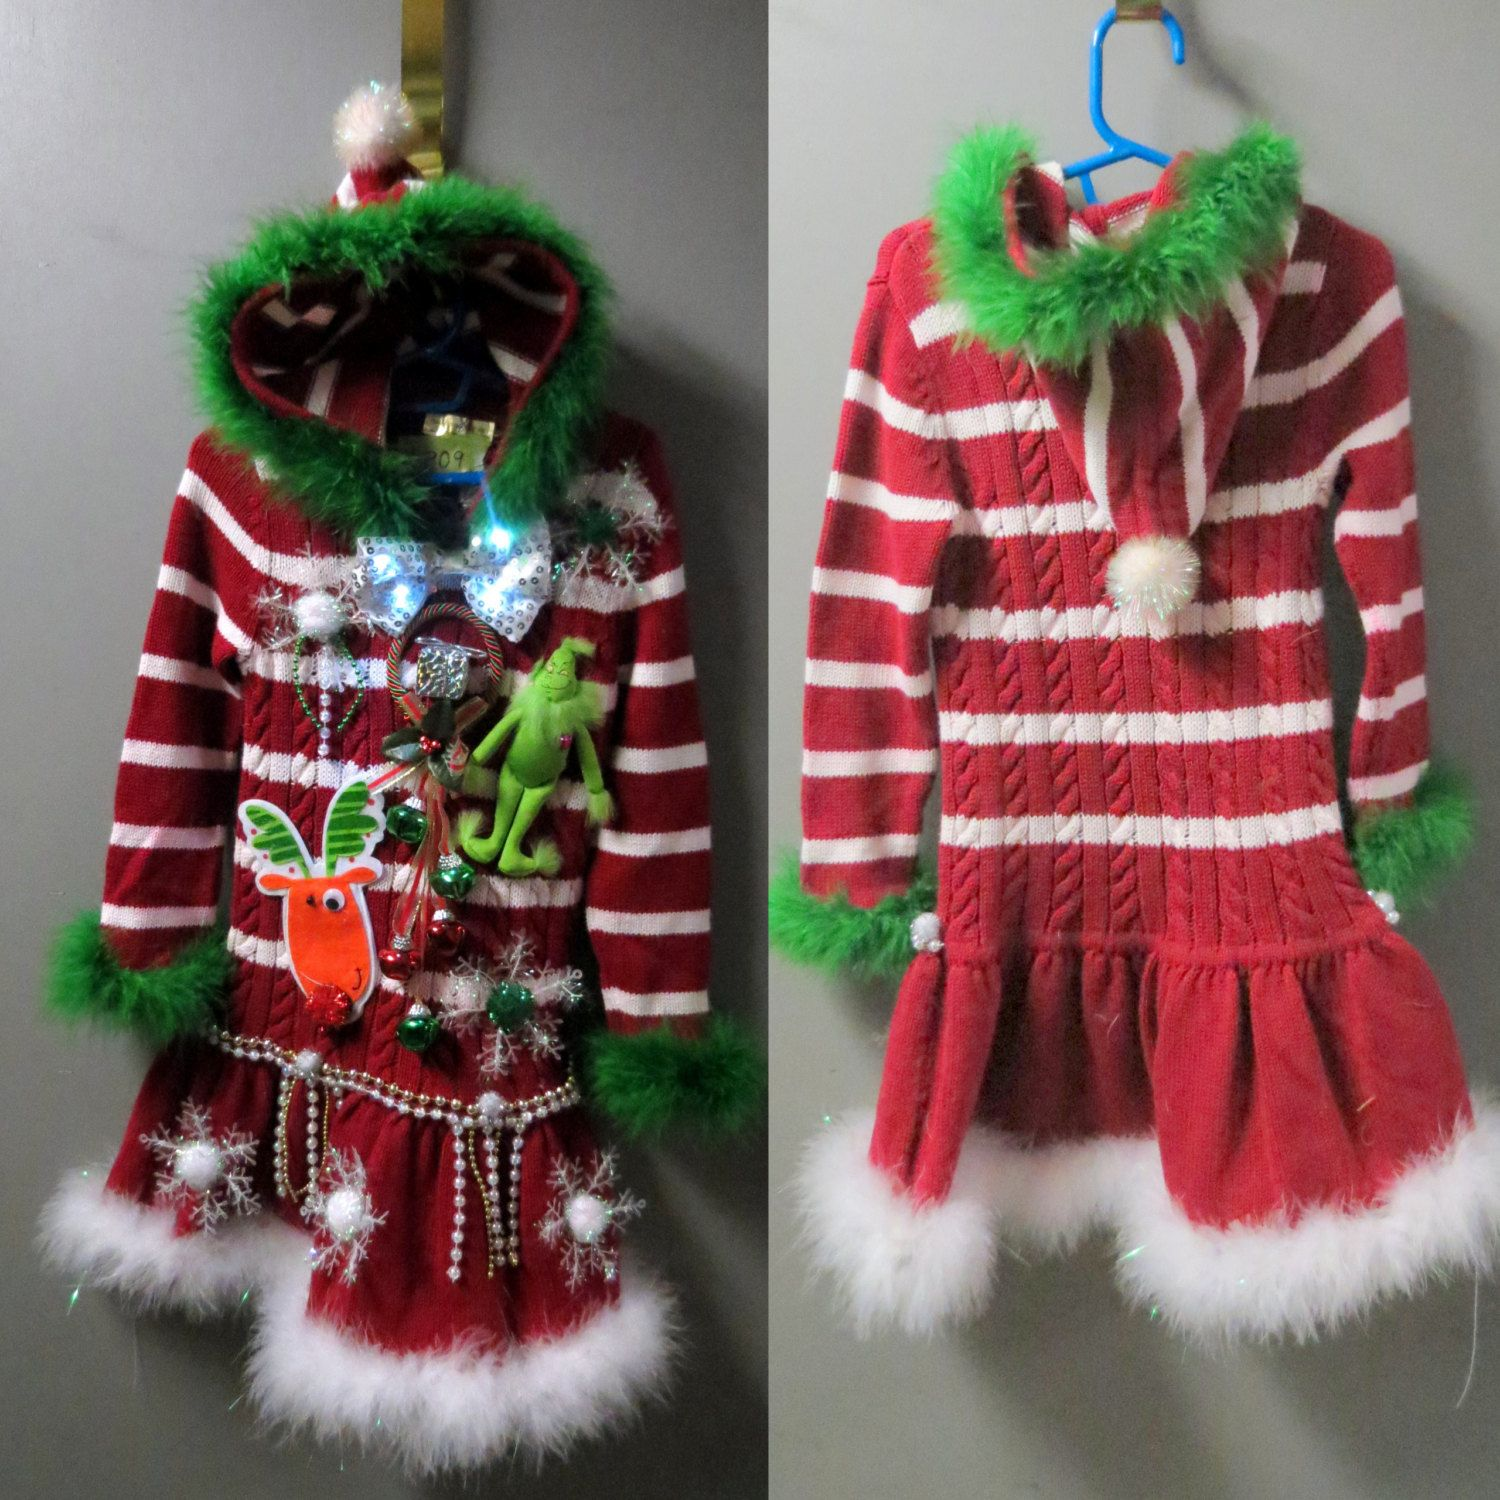 Pin on Kids Ugly Christmas Sweaters